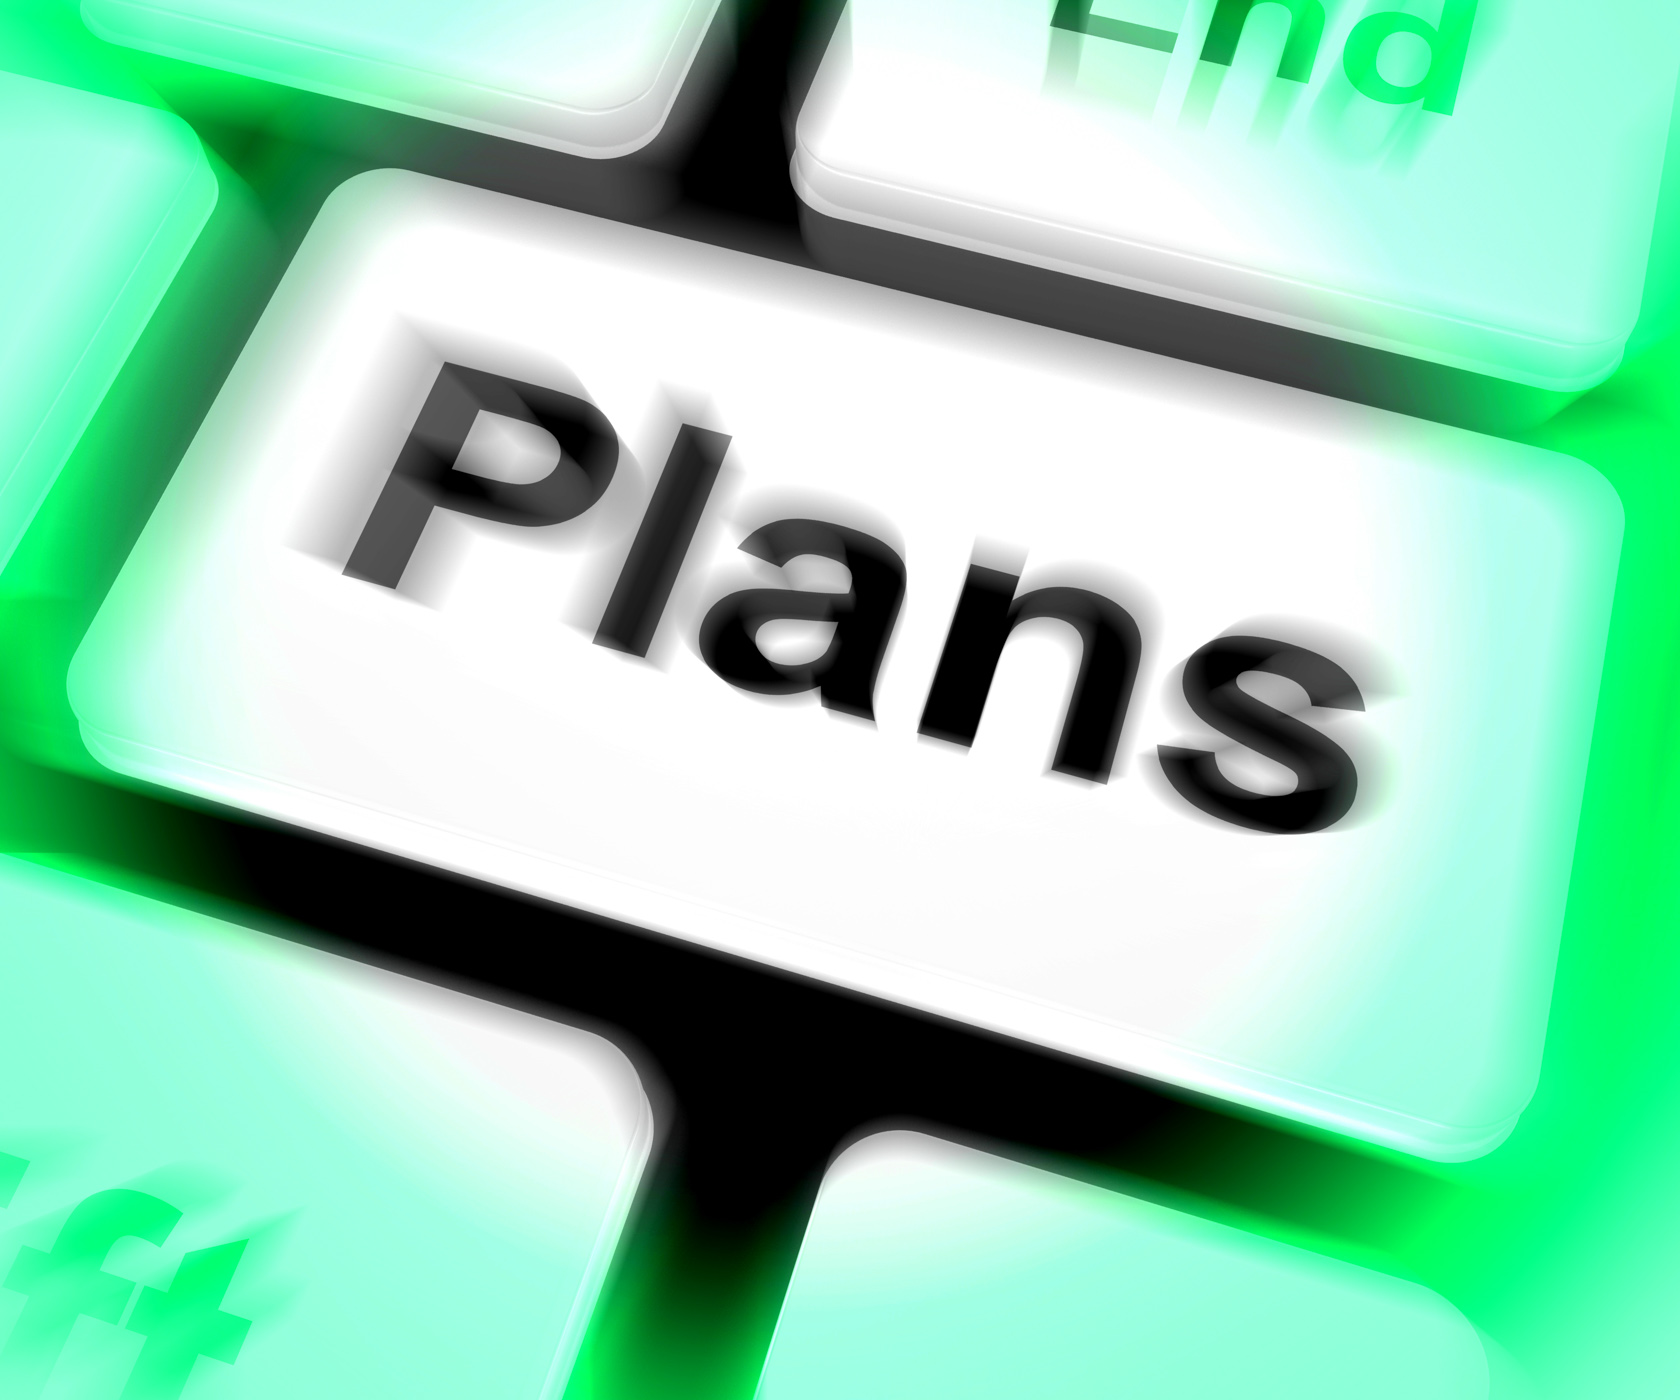 Plans Keyboard Shows Objectives Planning And Organizing, Aim, Missions, Target, Plans, HQ Photo